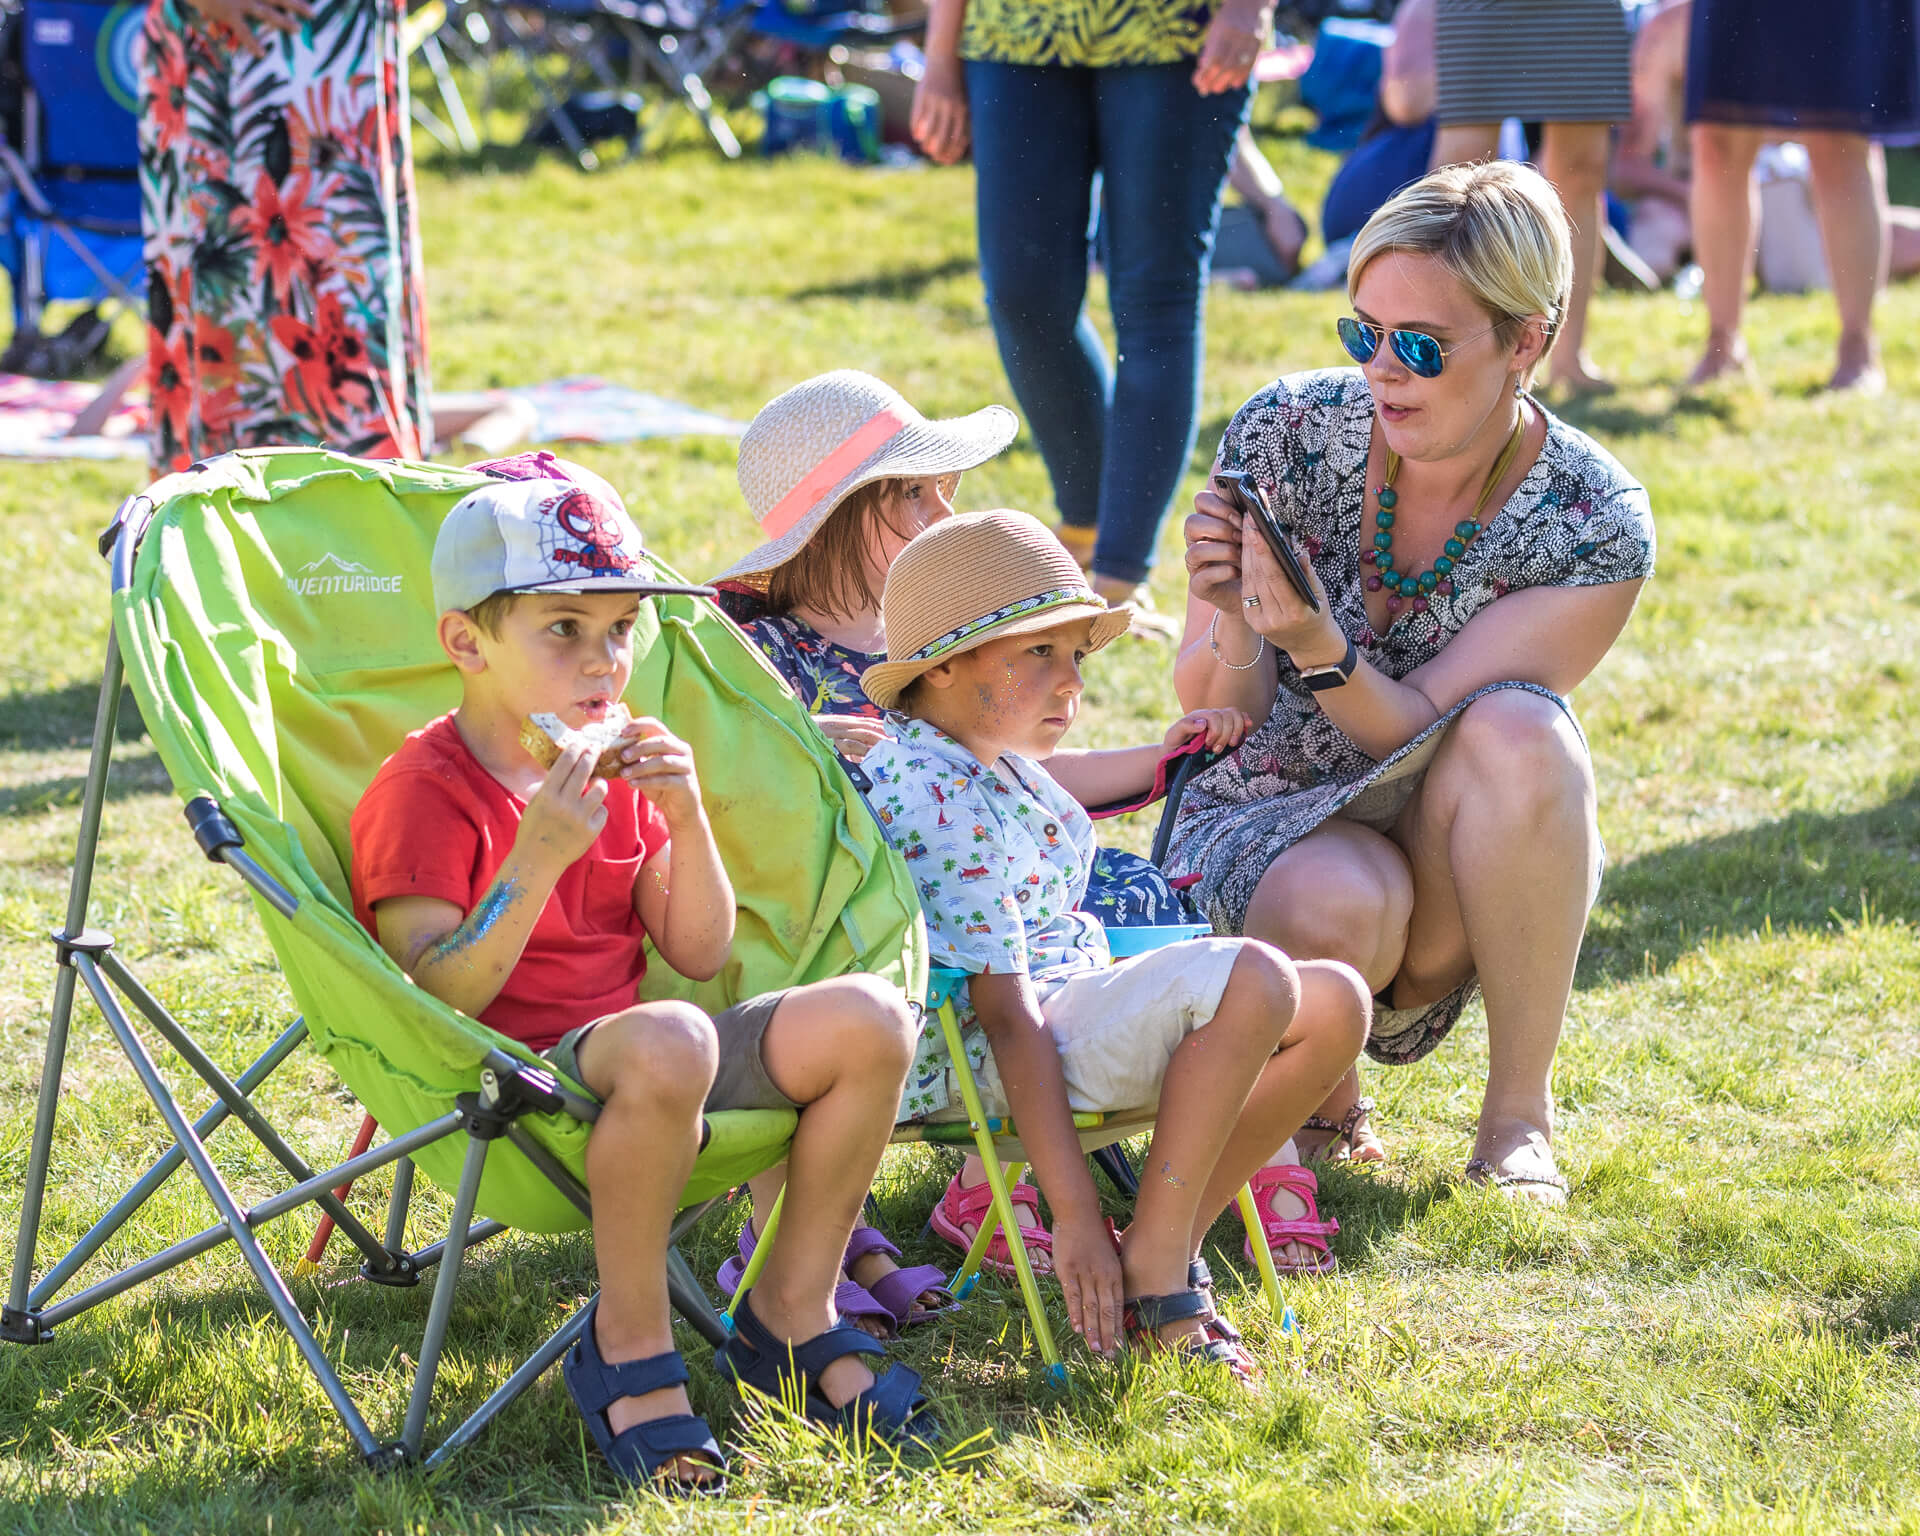 A family group of Mum and 3 children, seen here in colour, at Mantonfest in 2019. The 3 children, one of which is eating a sandwich, are engrossed in something in the stage area whilst Mum, who is squatting down to the side of them, tries to take a photo of them with her mobile phone. They appear to have zero interest in her efforts.